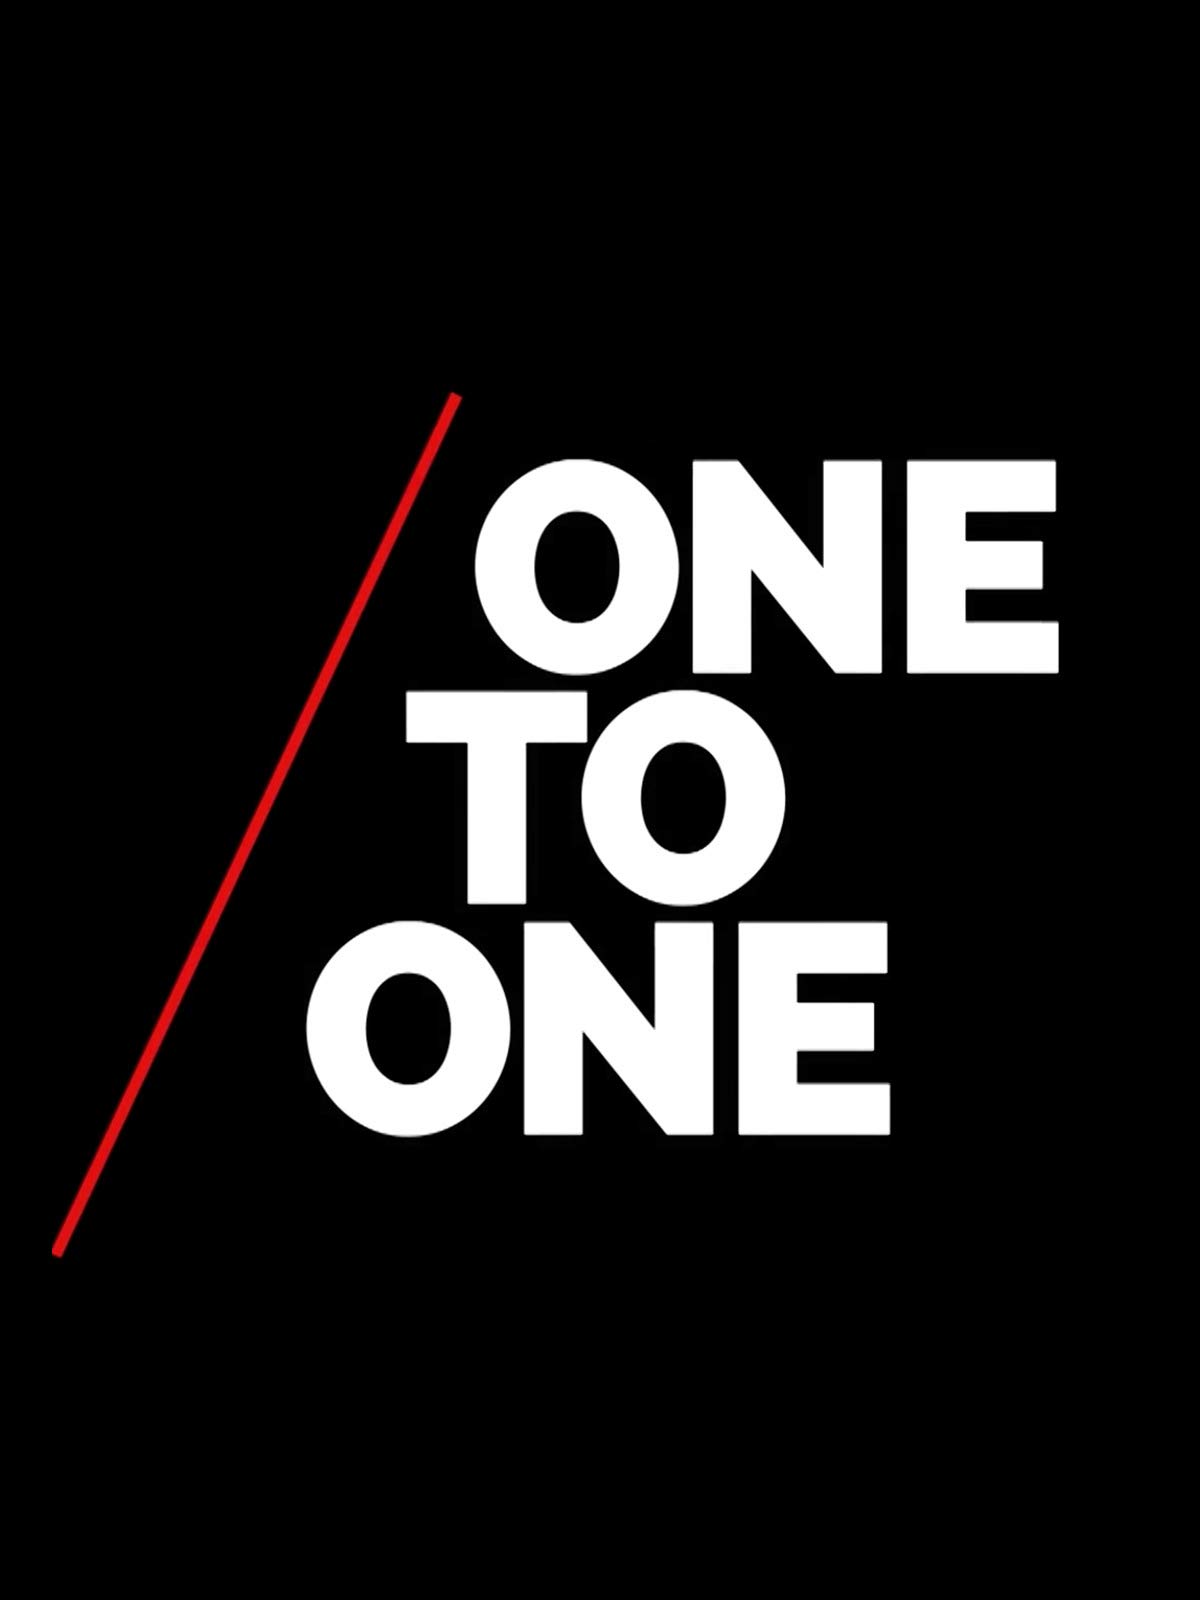 One to One - Eddy Merckx on Amazon Prime Video UK